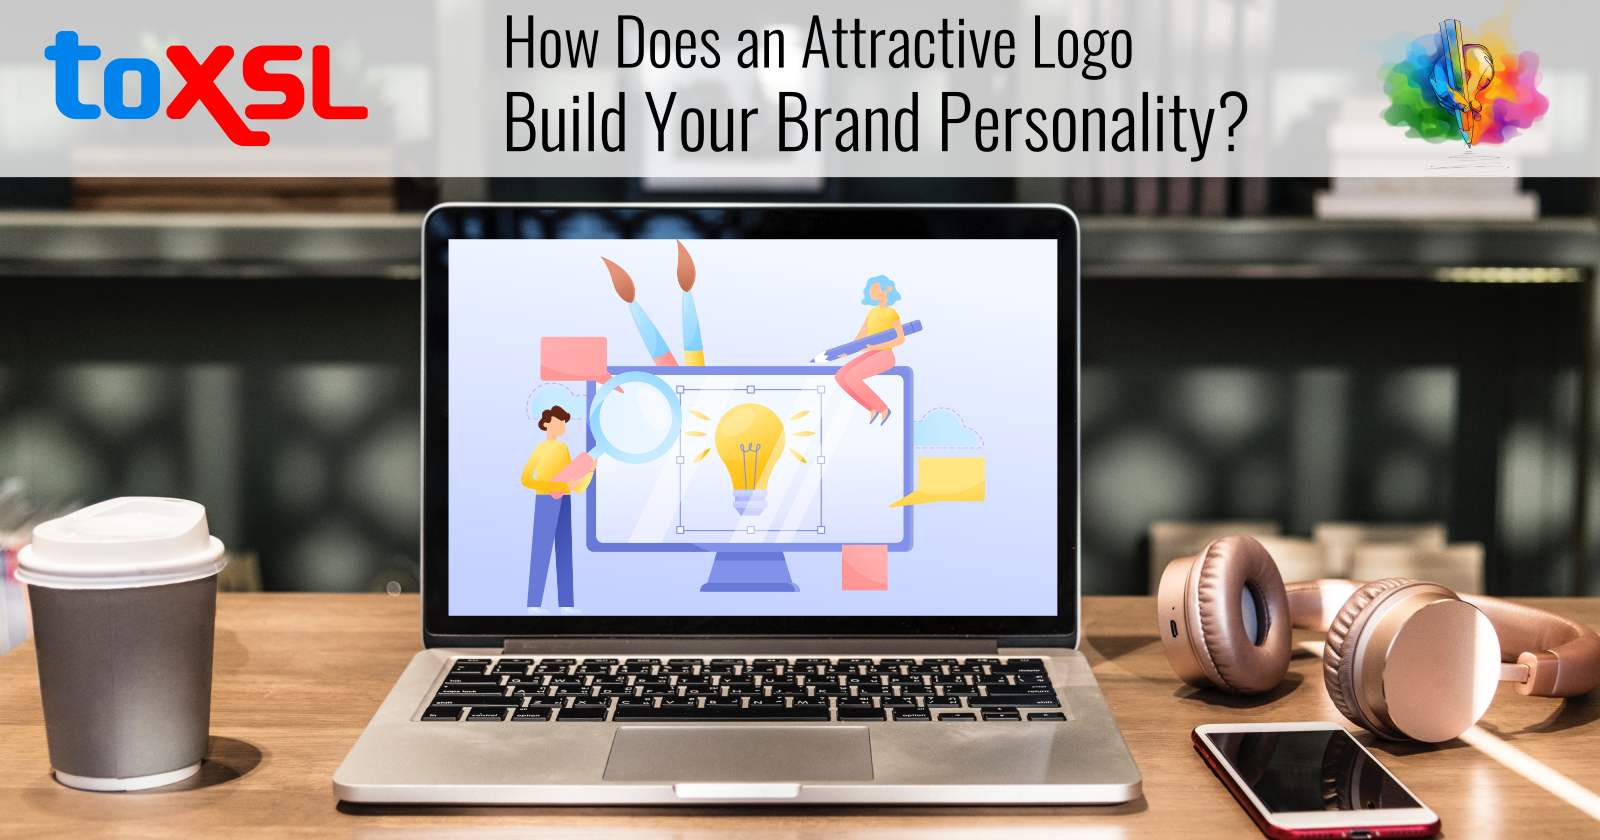 How Does an Attractive Logo Build Your Brand Personality?